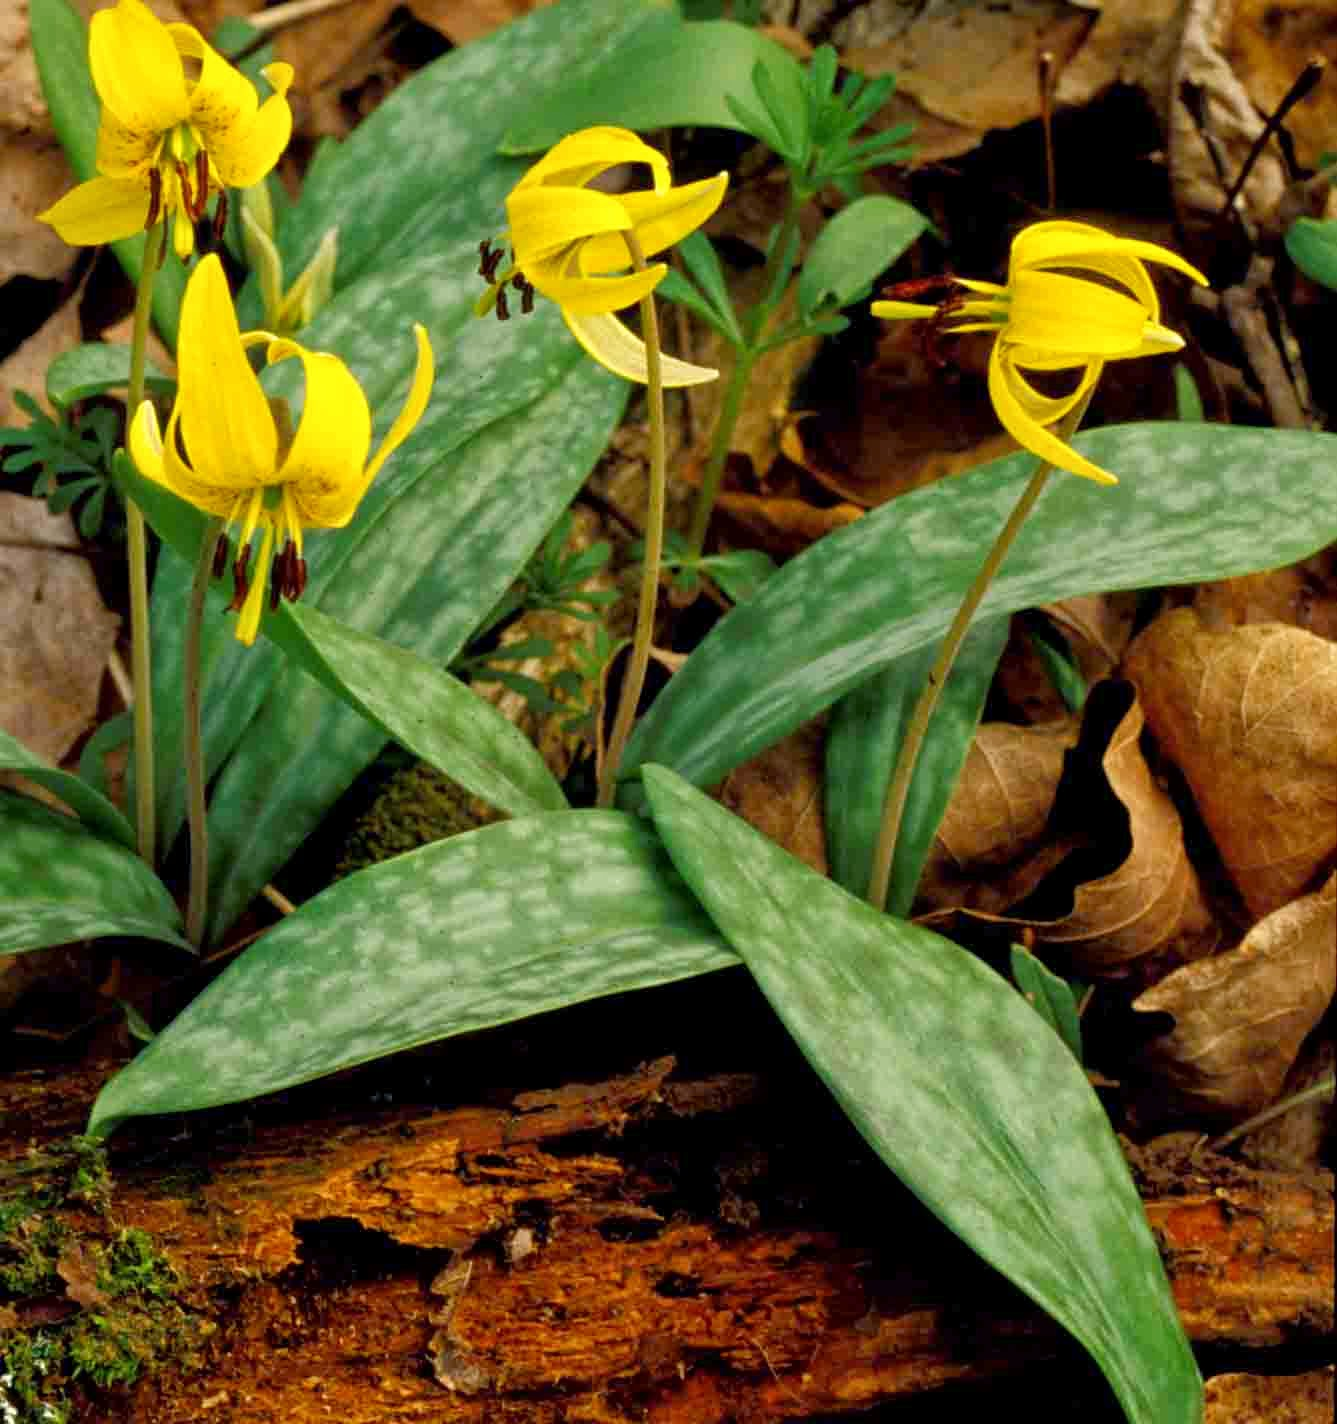 Native Plants In Pennsylvania: Kentucky Native Plant And Wildlife: April 2014